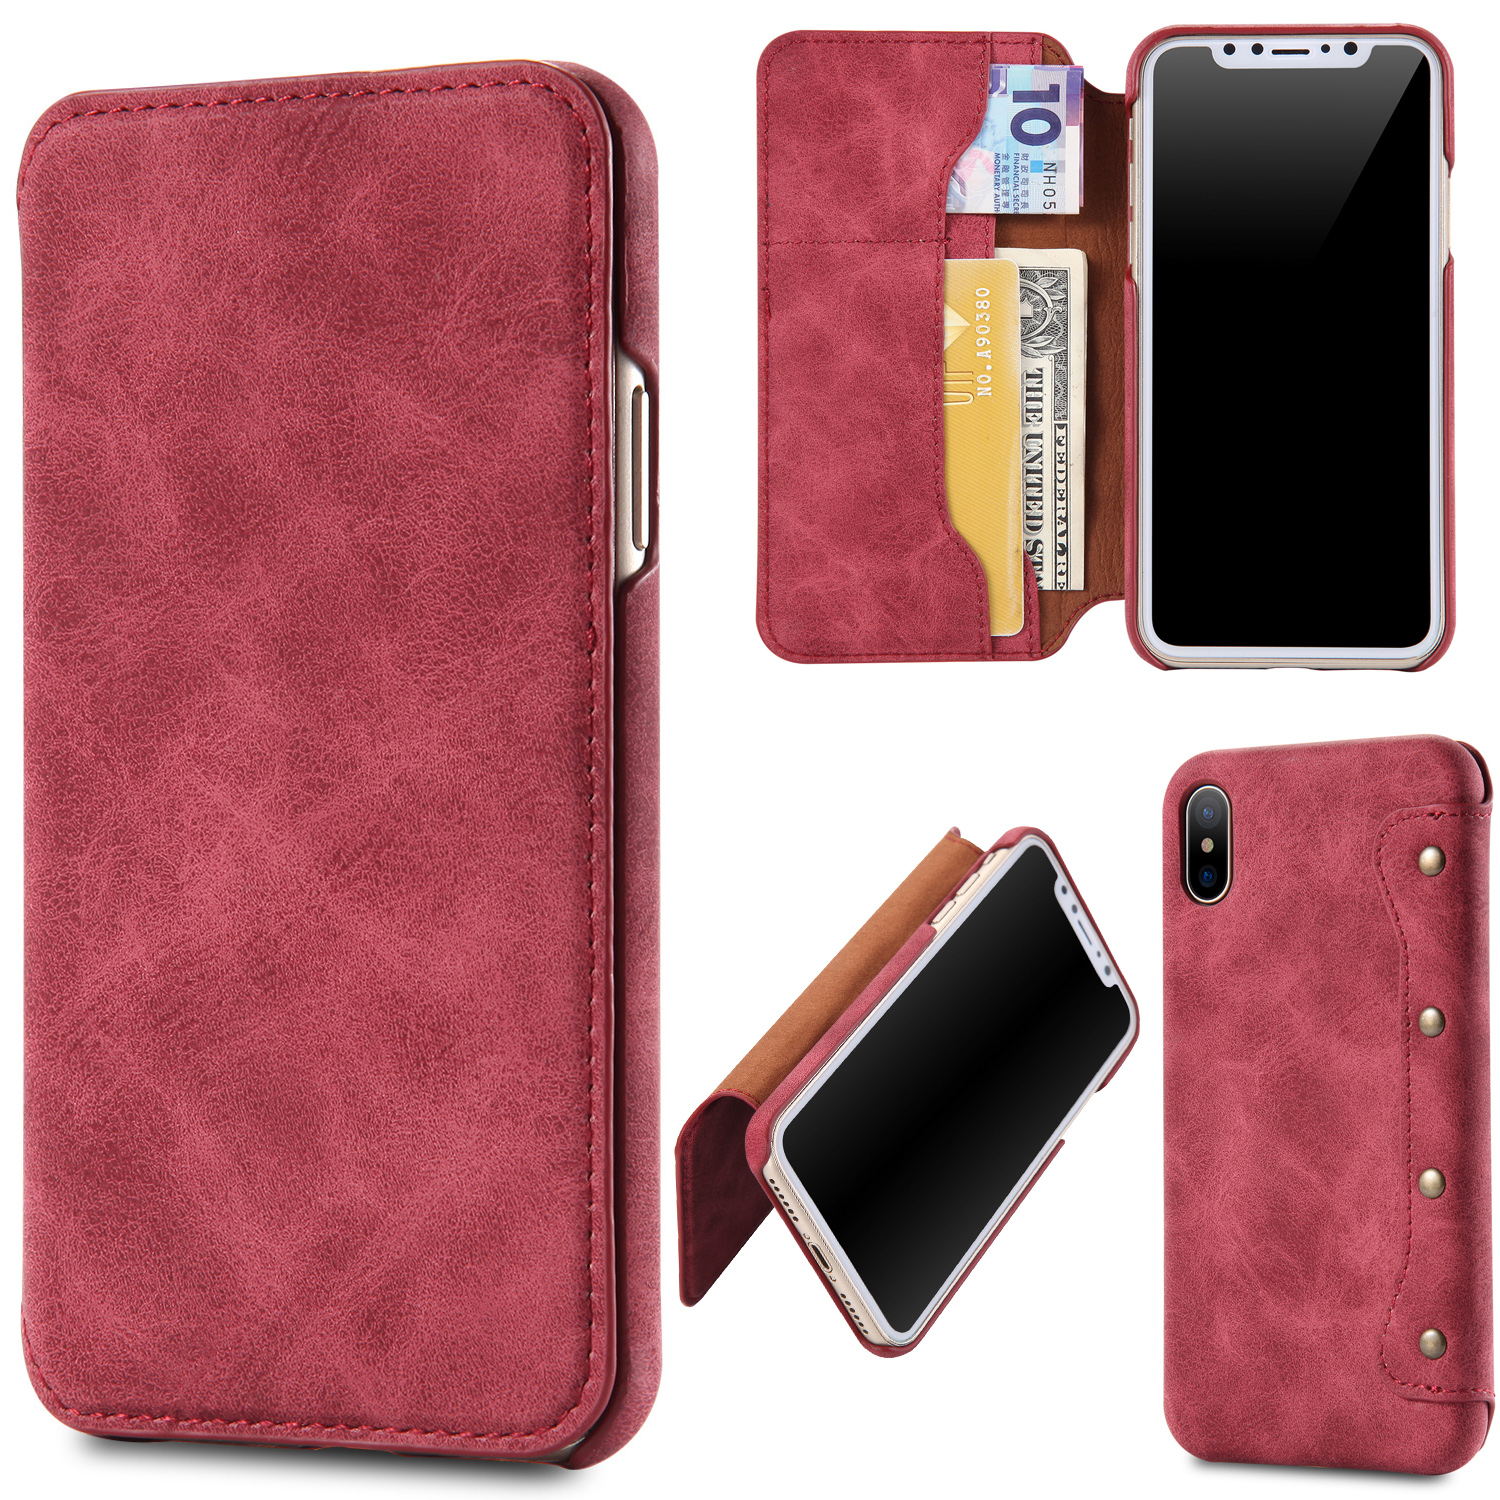 Luxury Leather Case For iPhone X 8 7 6 Plus Retro Flip Card Holder Wallet Case For iPhone Xs Max XR Book Cover Phone Shell CapaLuxury Leather Case For iPhone X 8 7 6 Plus Retro Flip Card Holder Wallet Case For iPhone Xs Max XR Book Cover Phone Shell Capa